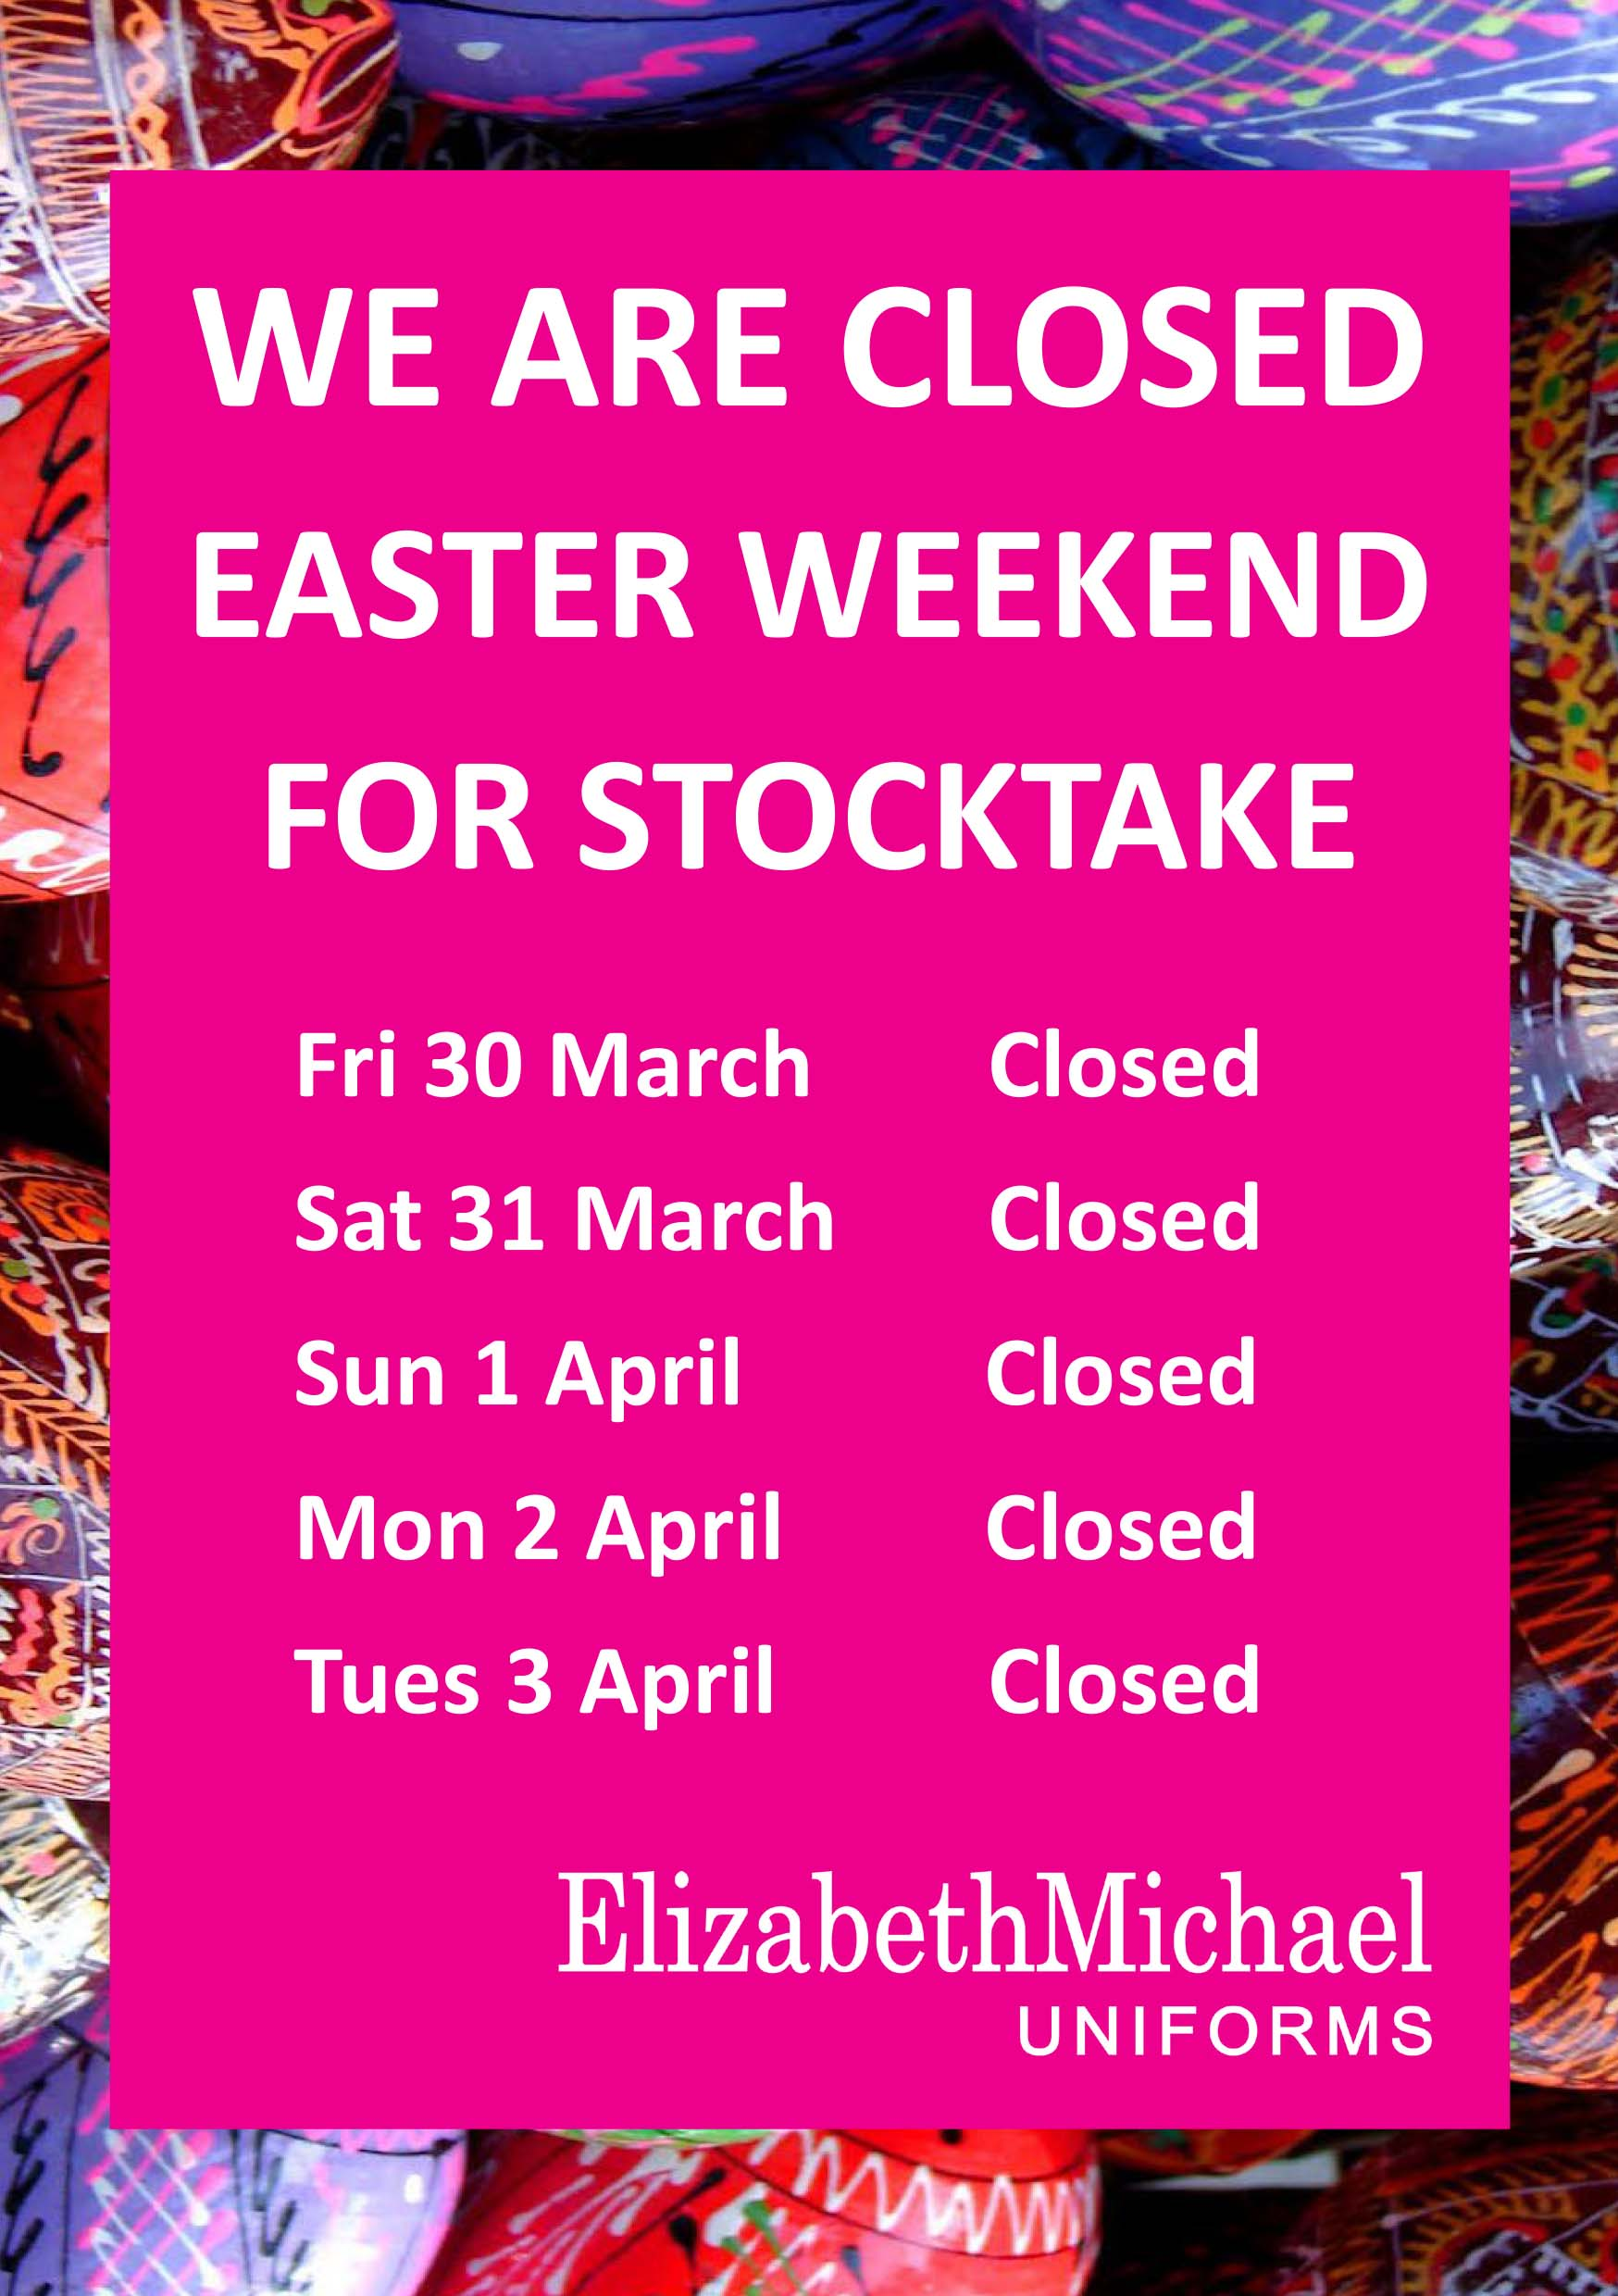 16-03-2018 - Easter closed